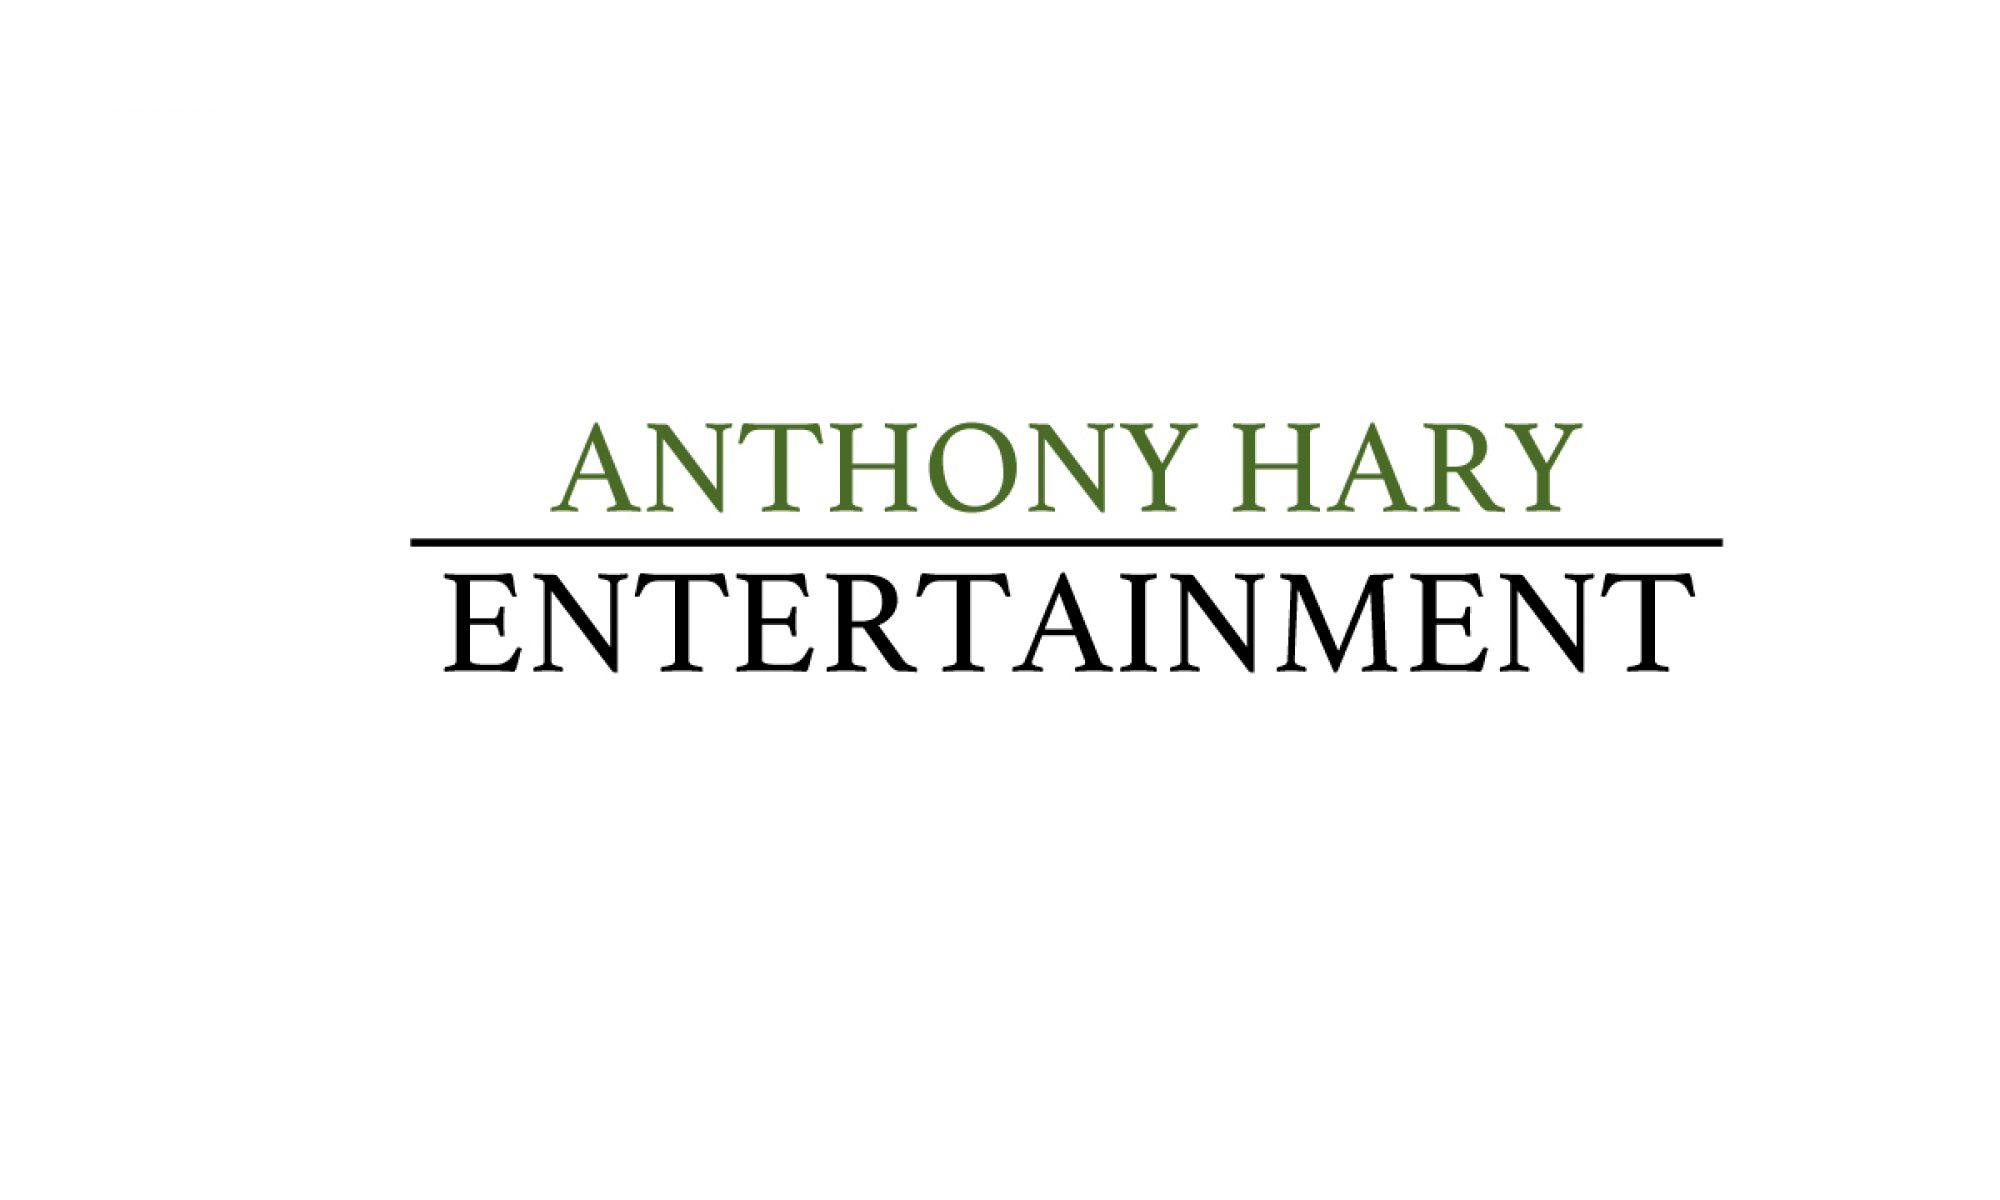 Anthony Hary Entertainment